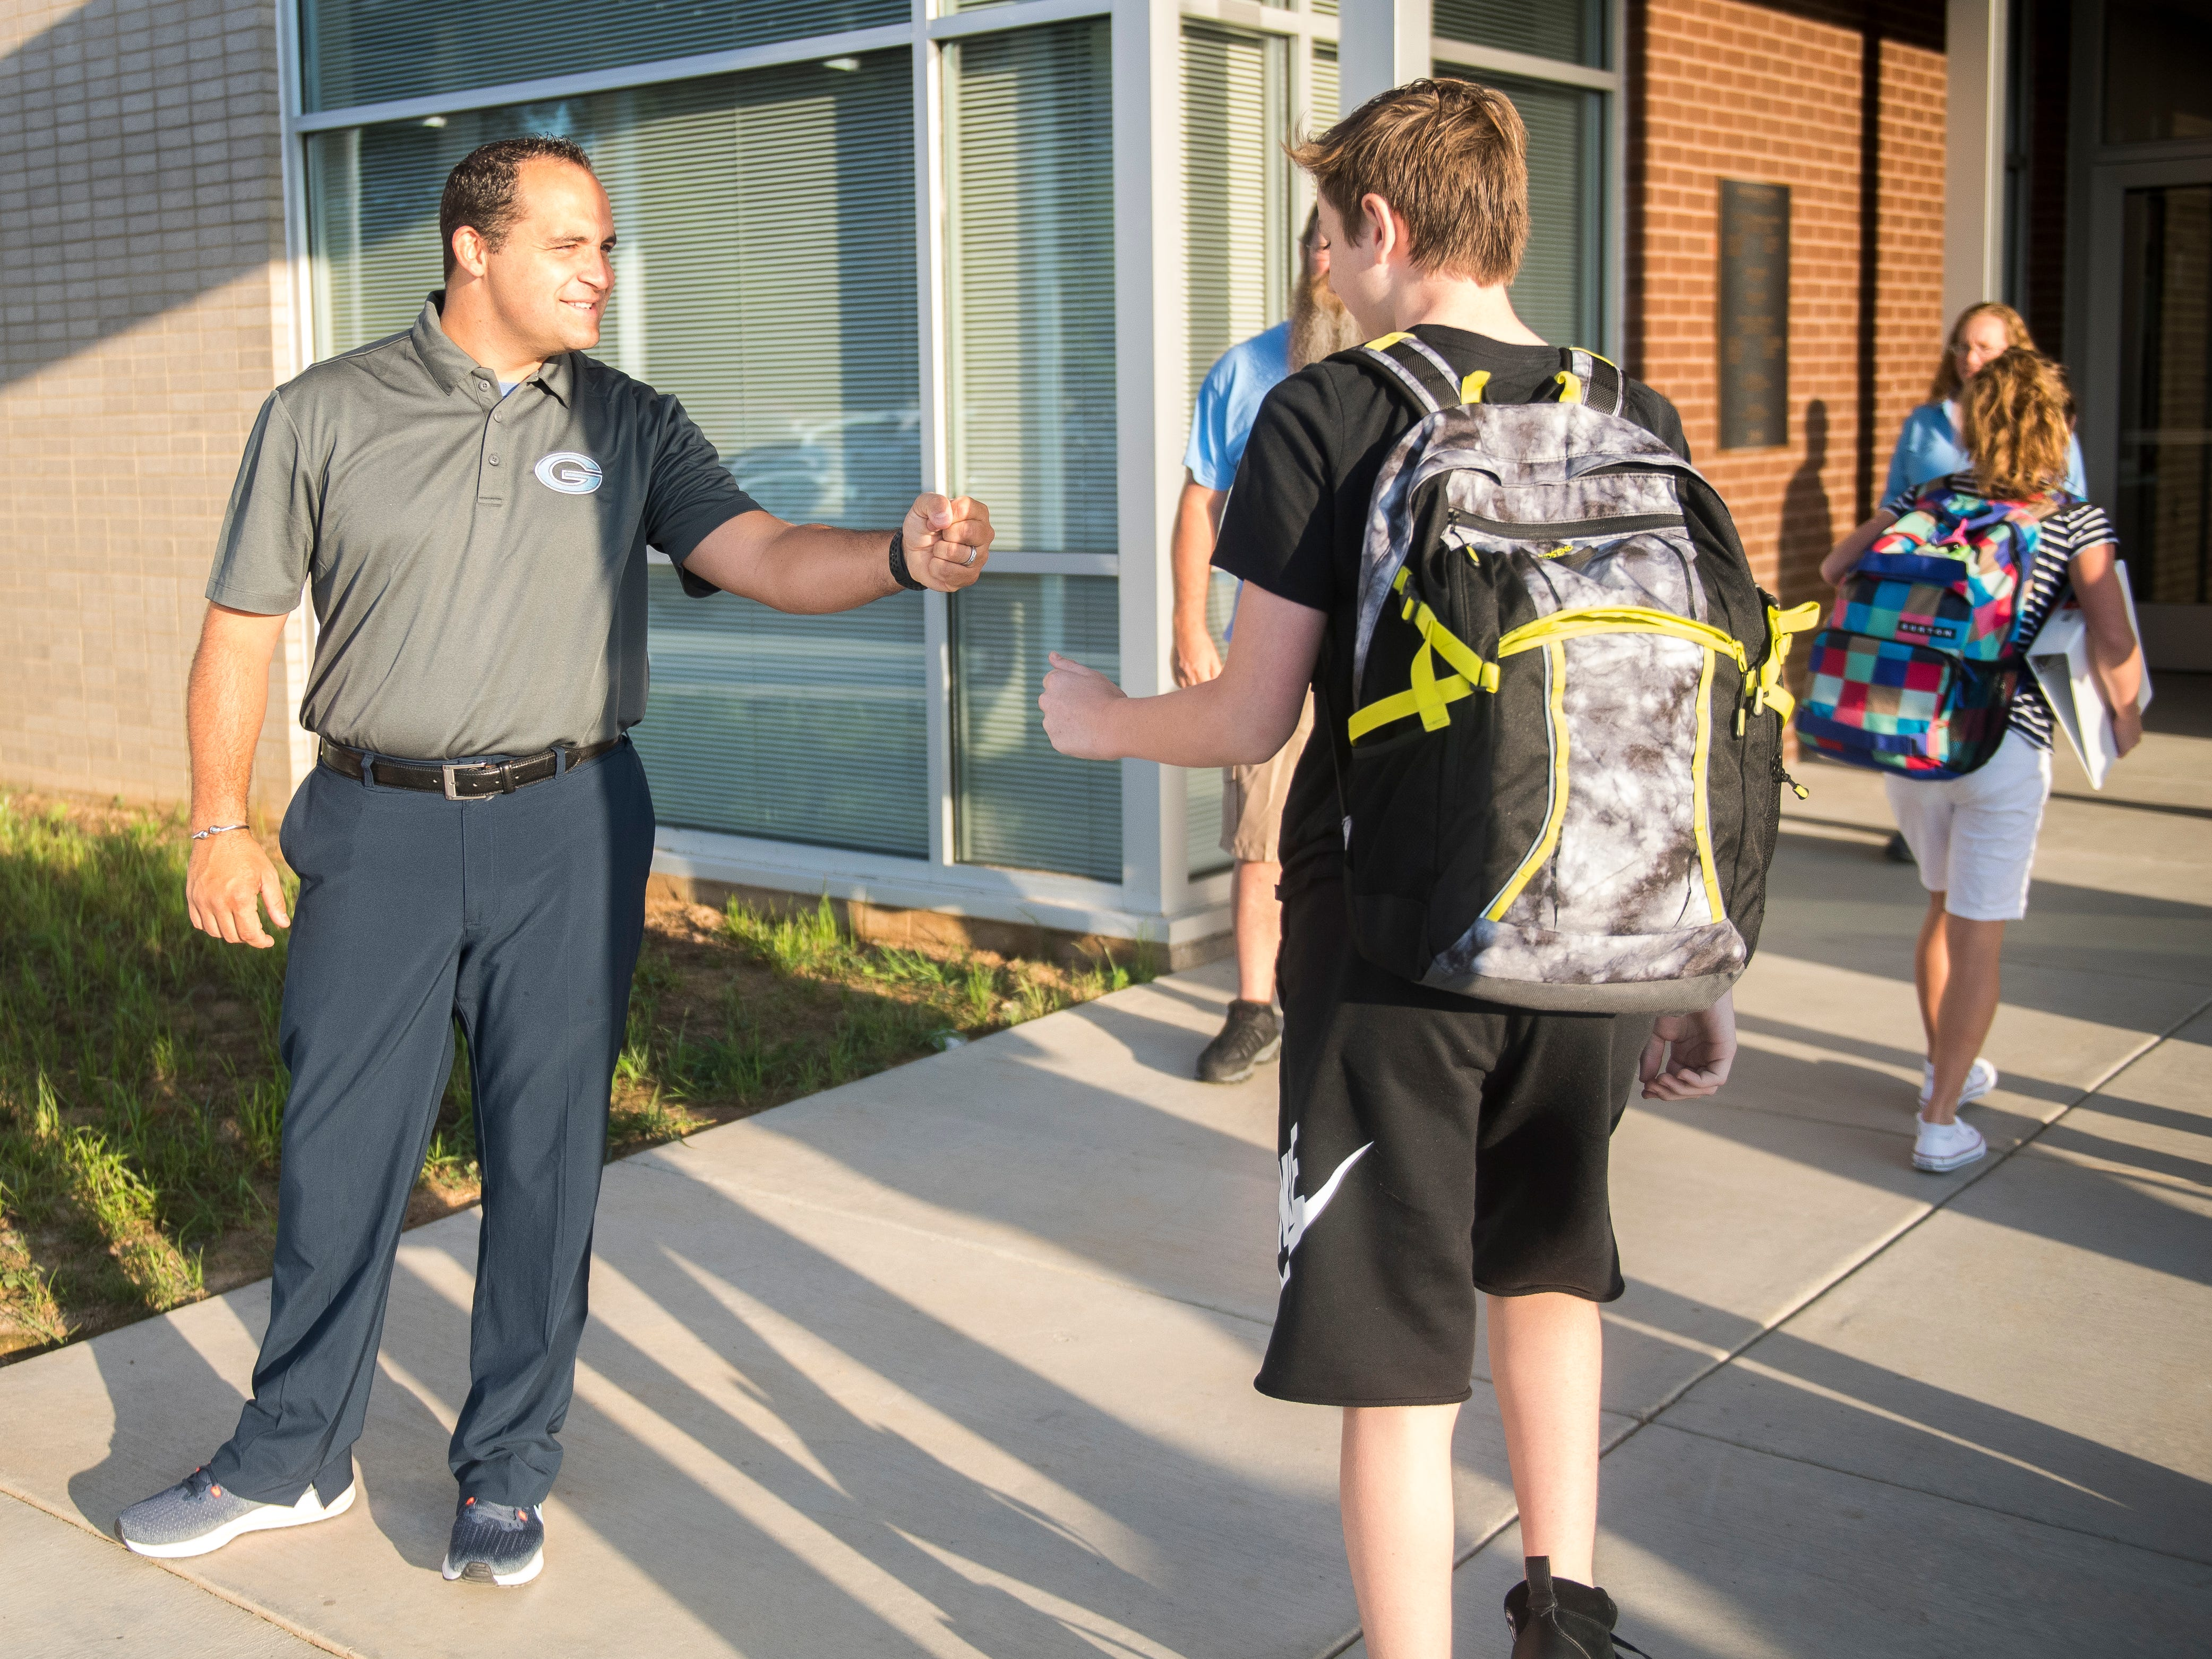 Students get high fives and handshakes as they enter the new Gibbs Middle School for the first day of school on Wednesday, August 8, 2018.